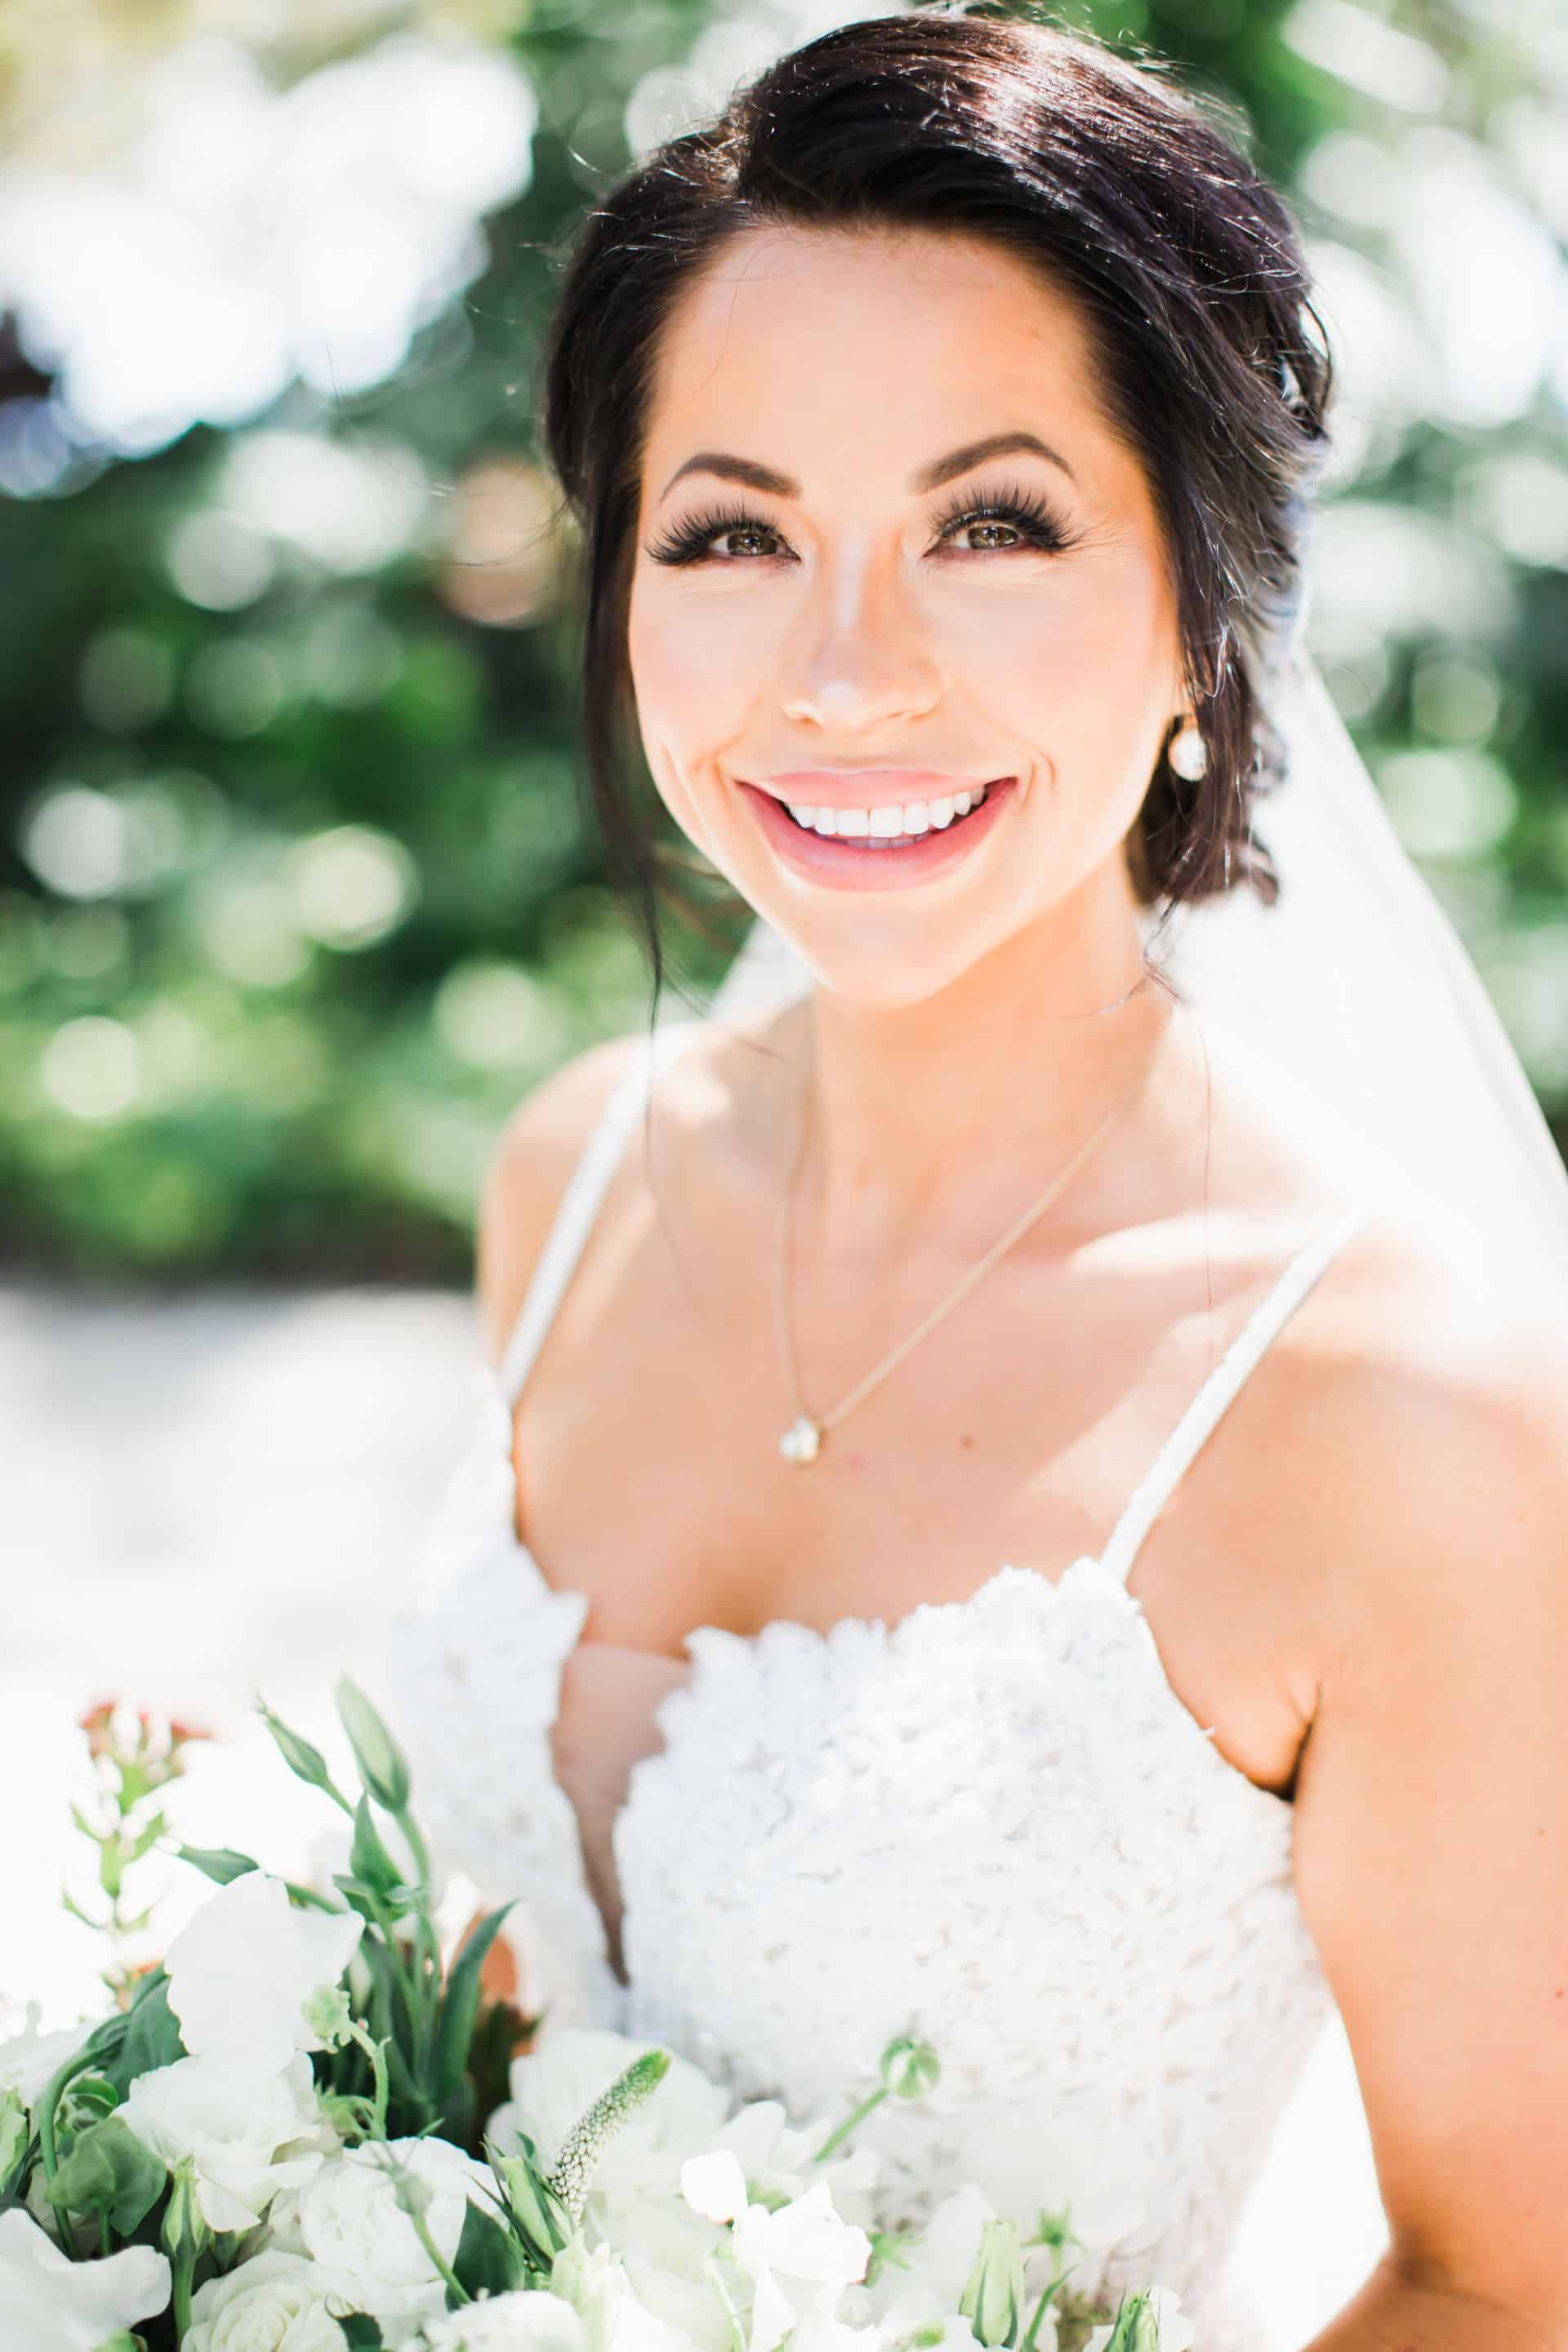 Beautiful smiling bride on Maui | Maui's Angels